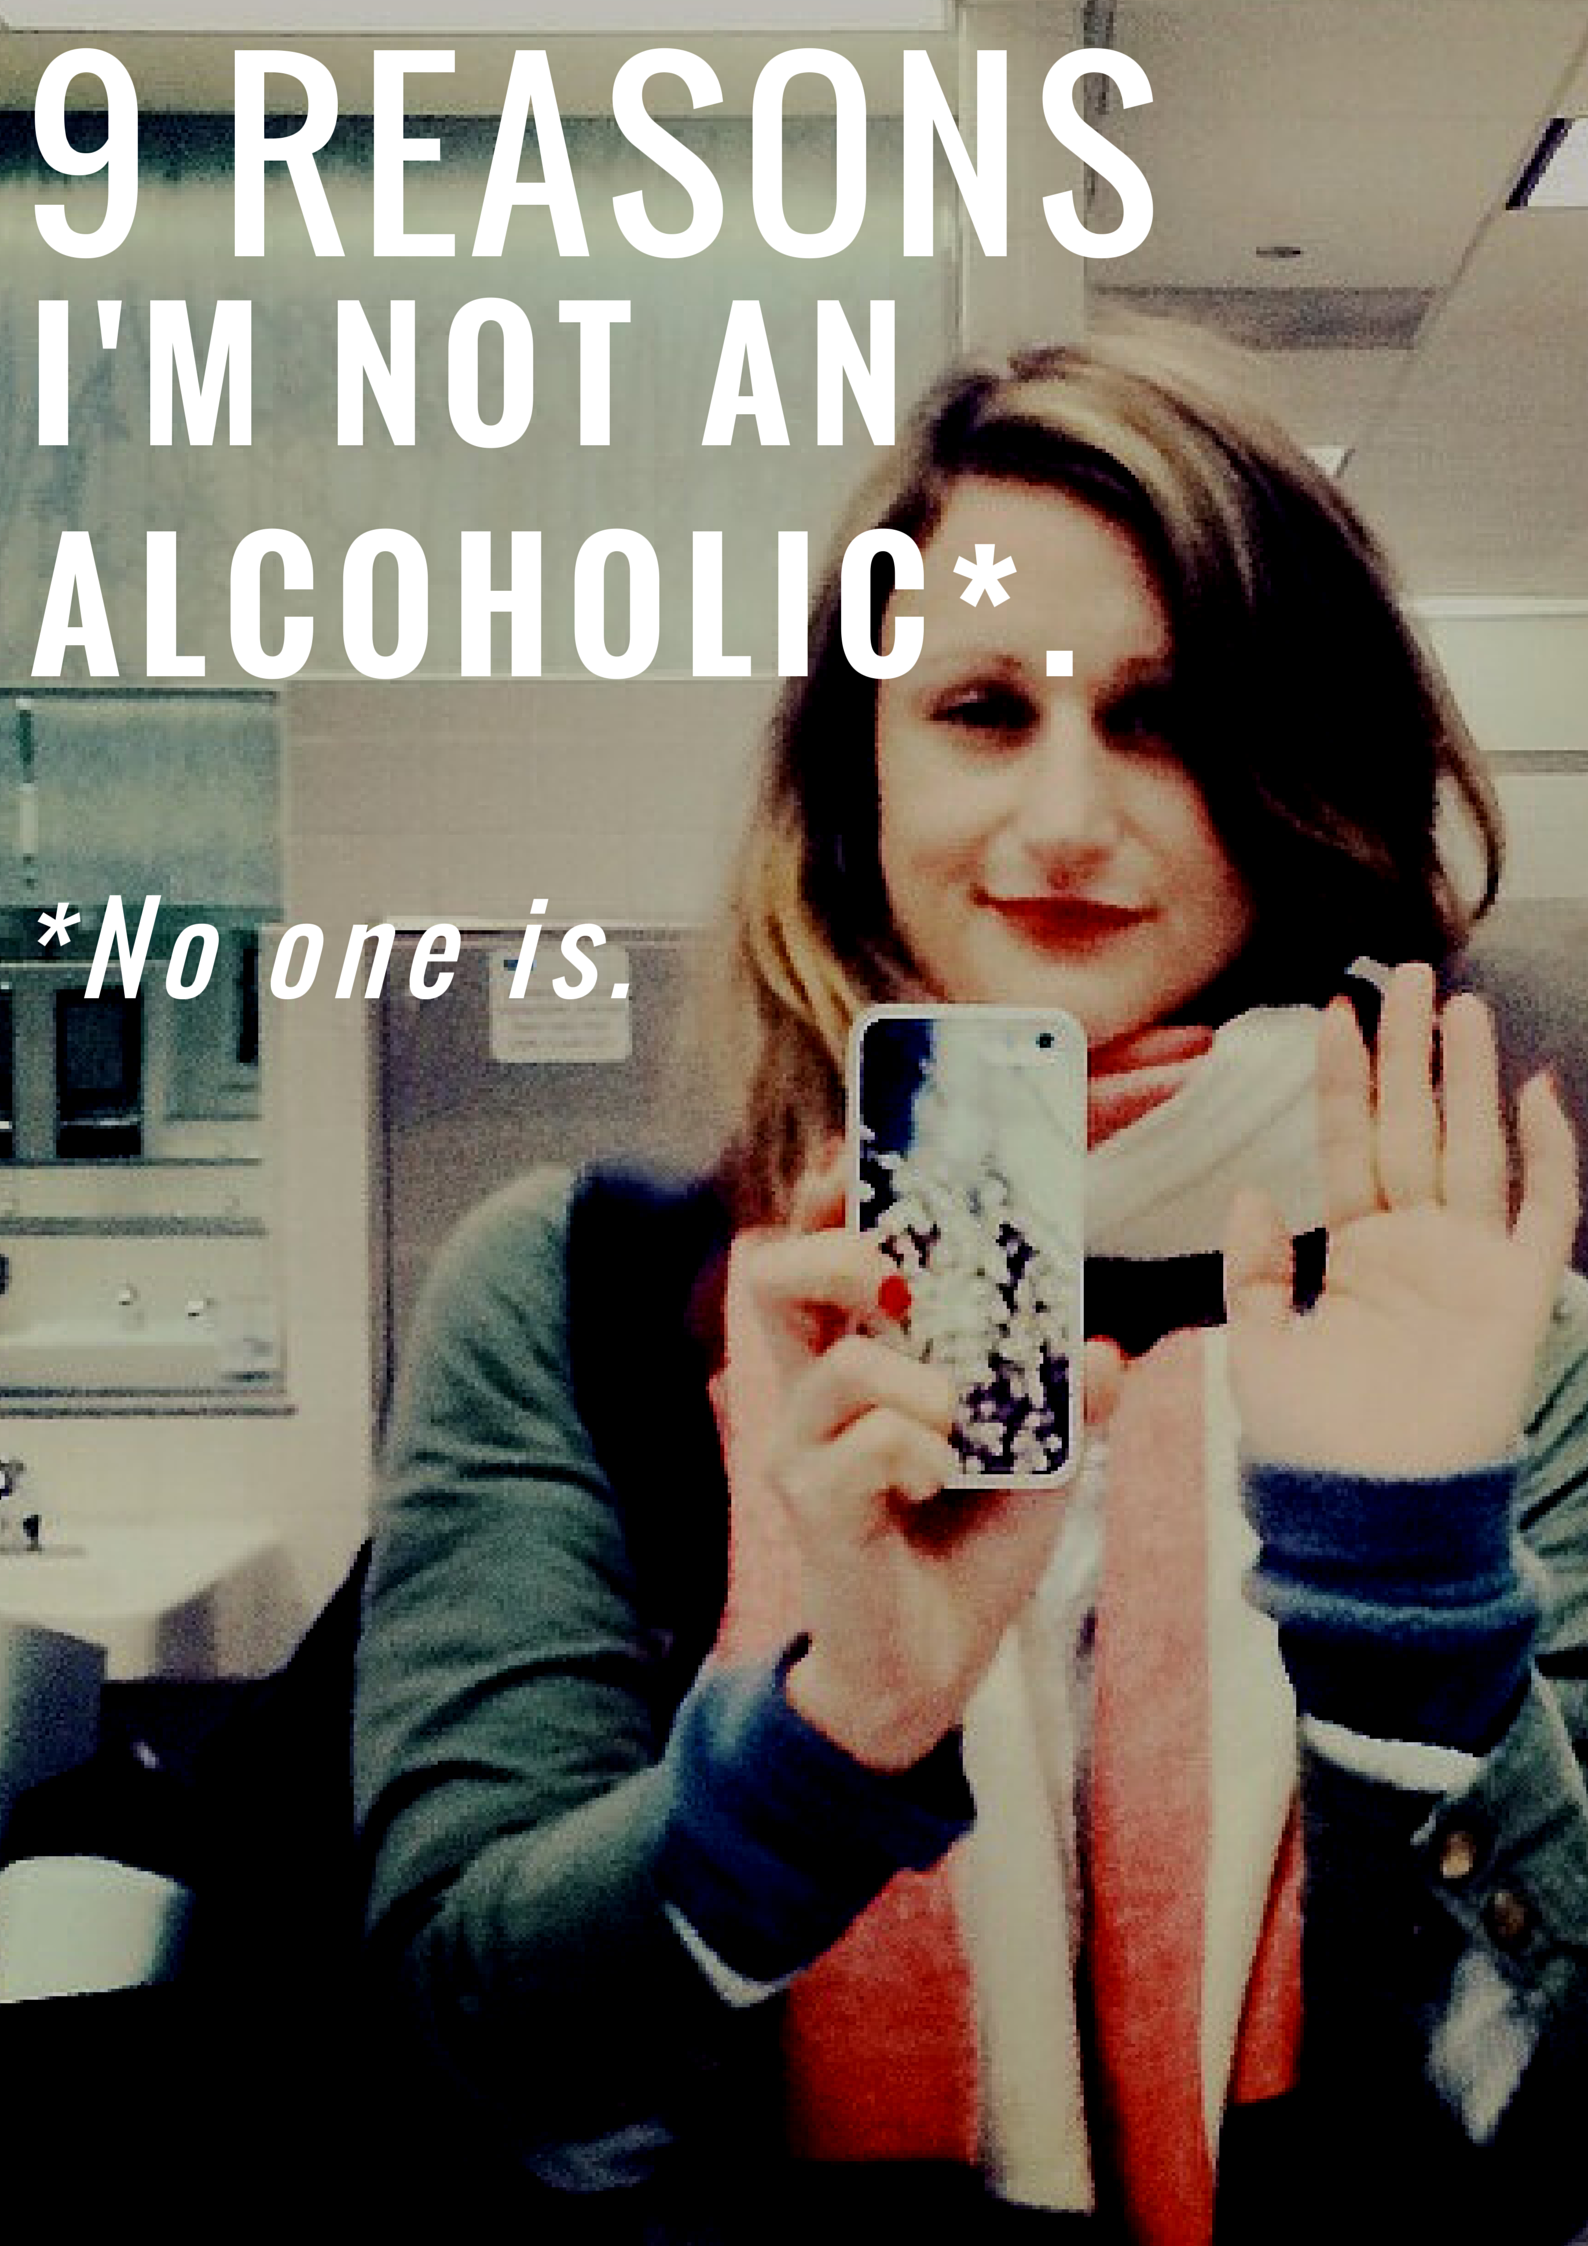 9 REASONS I'M NOT AN ALCOHOLIC